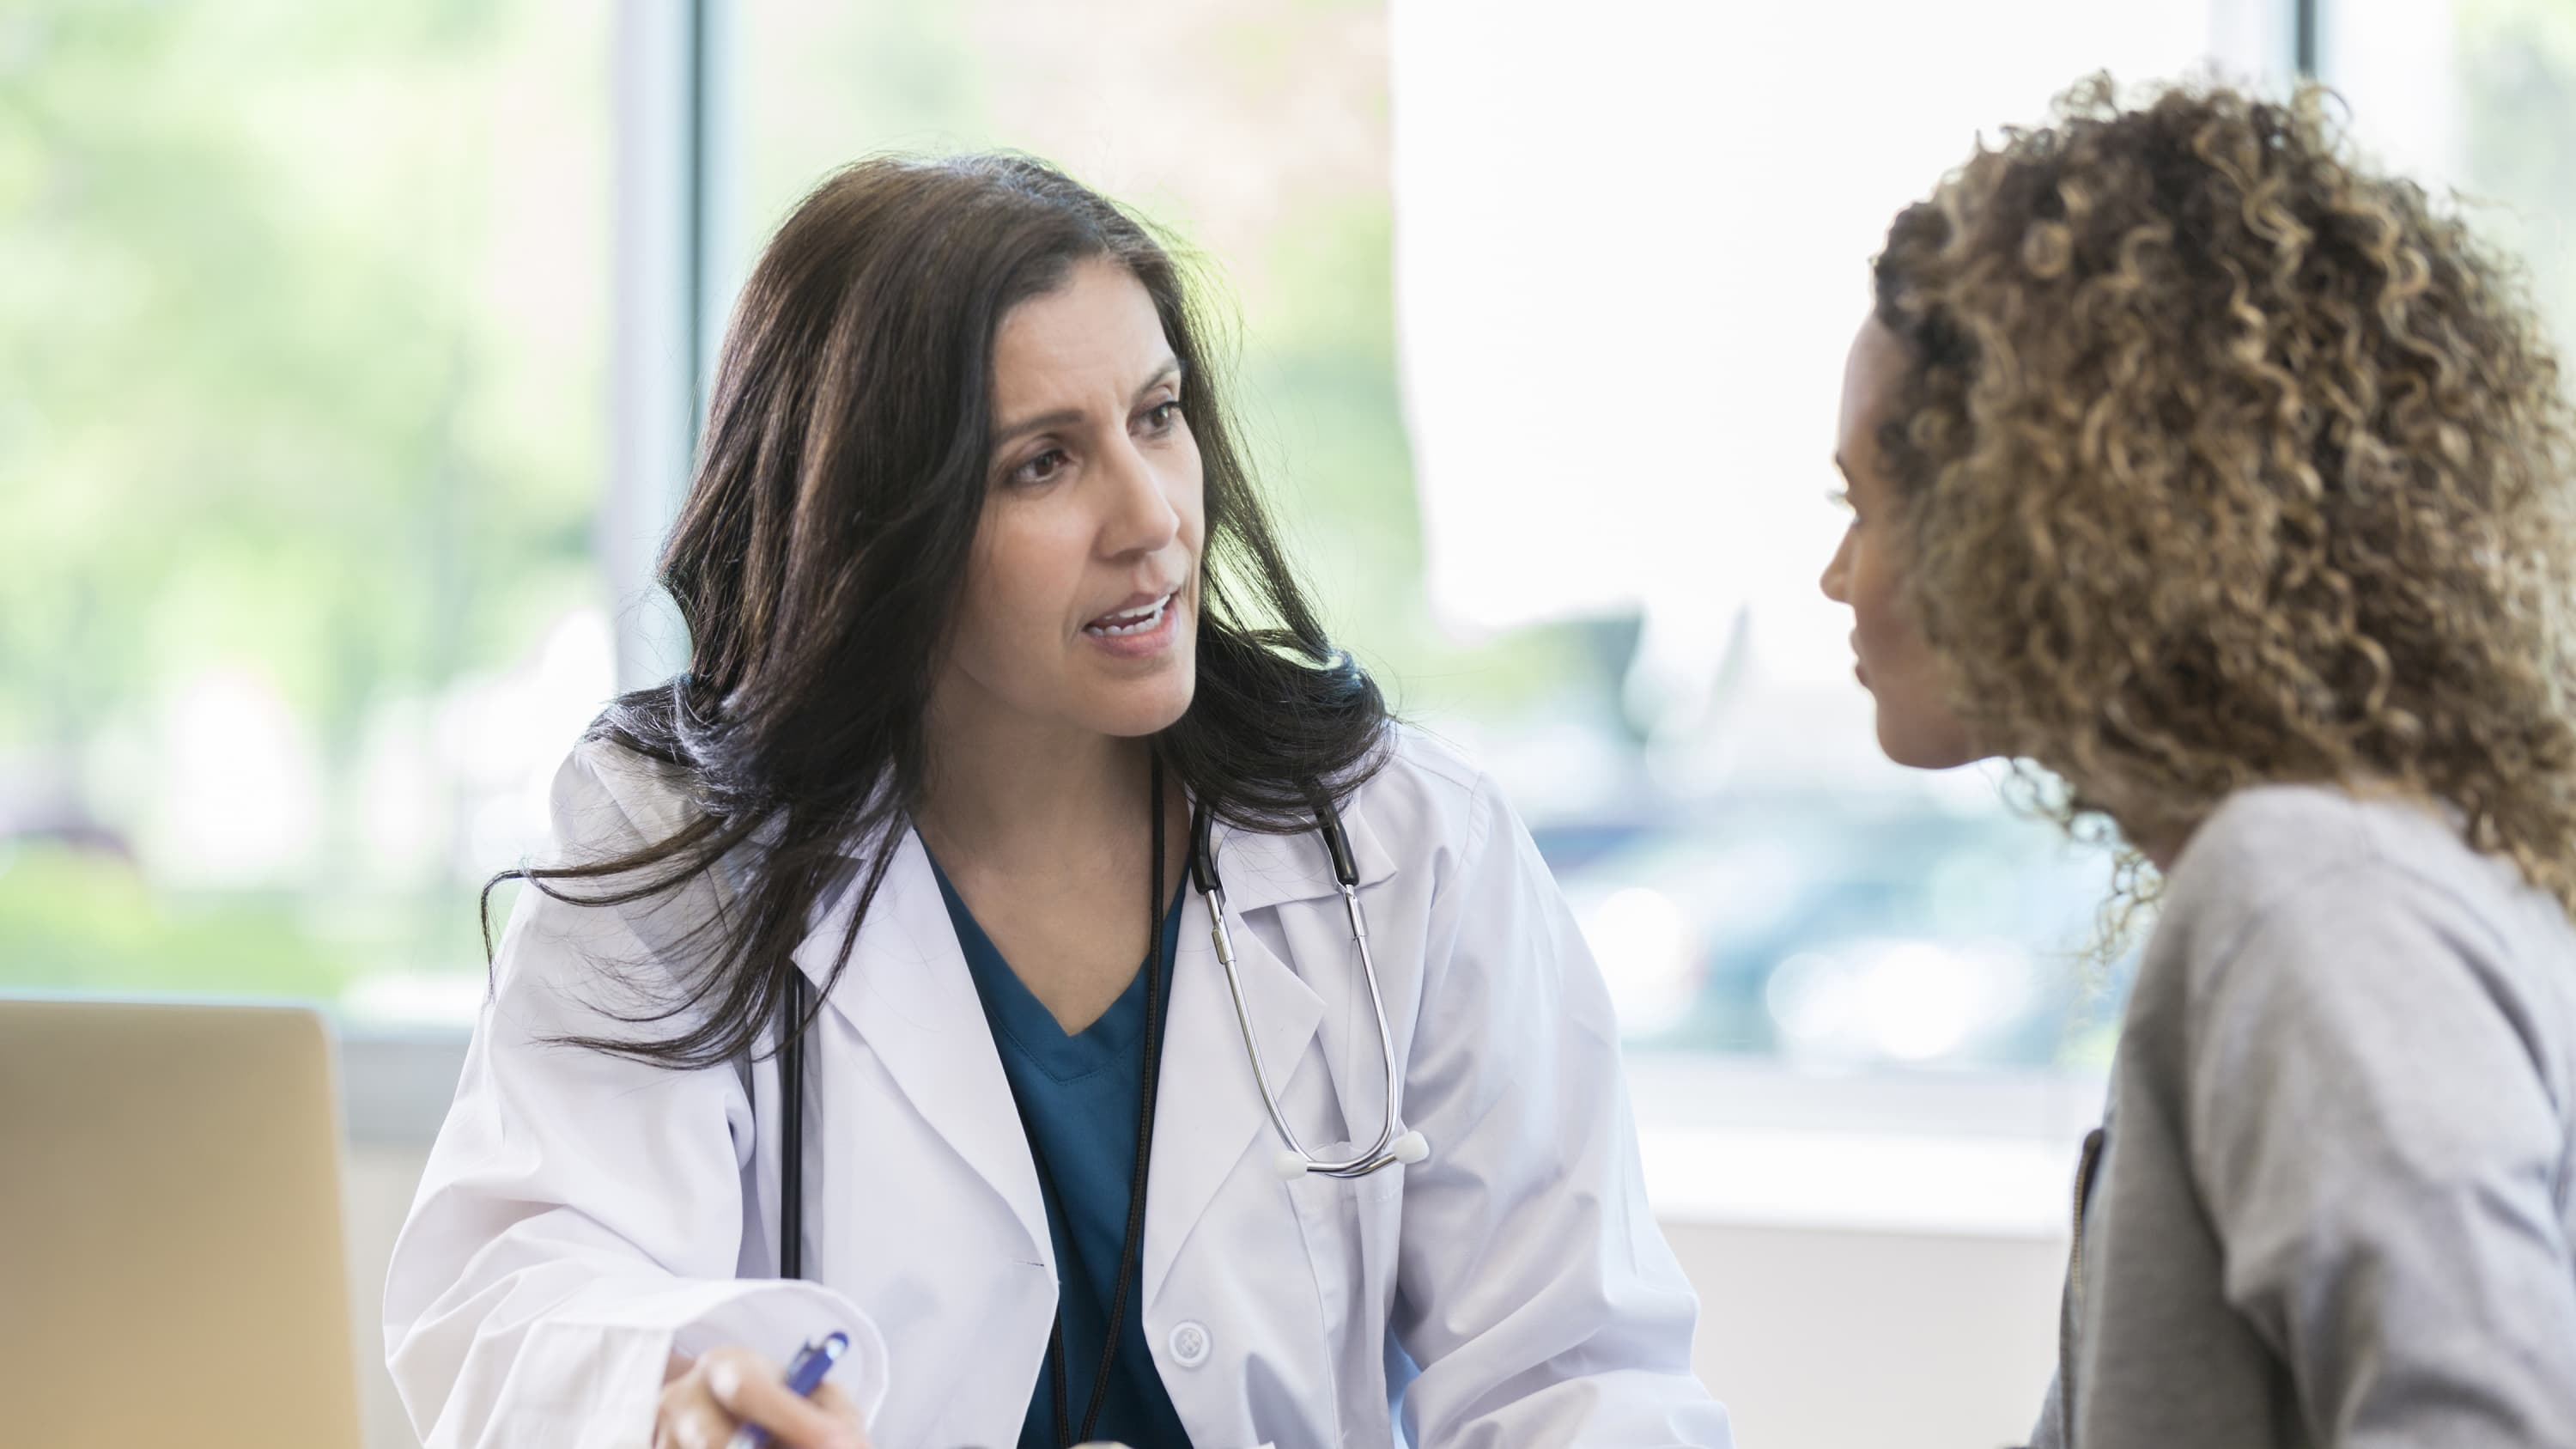 A doctor speaks with her patient, possibly discussing cervical insufficiency